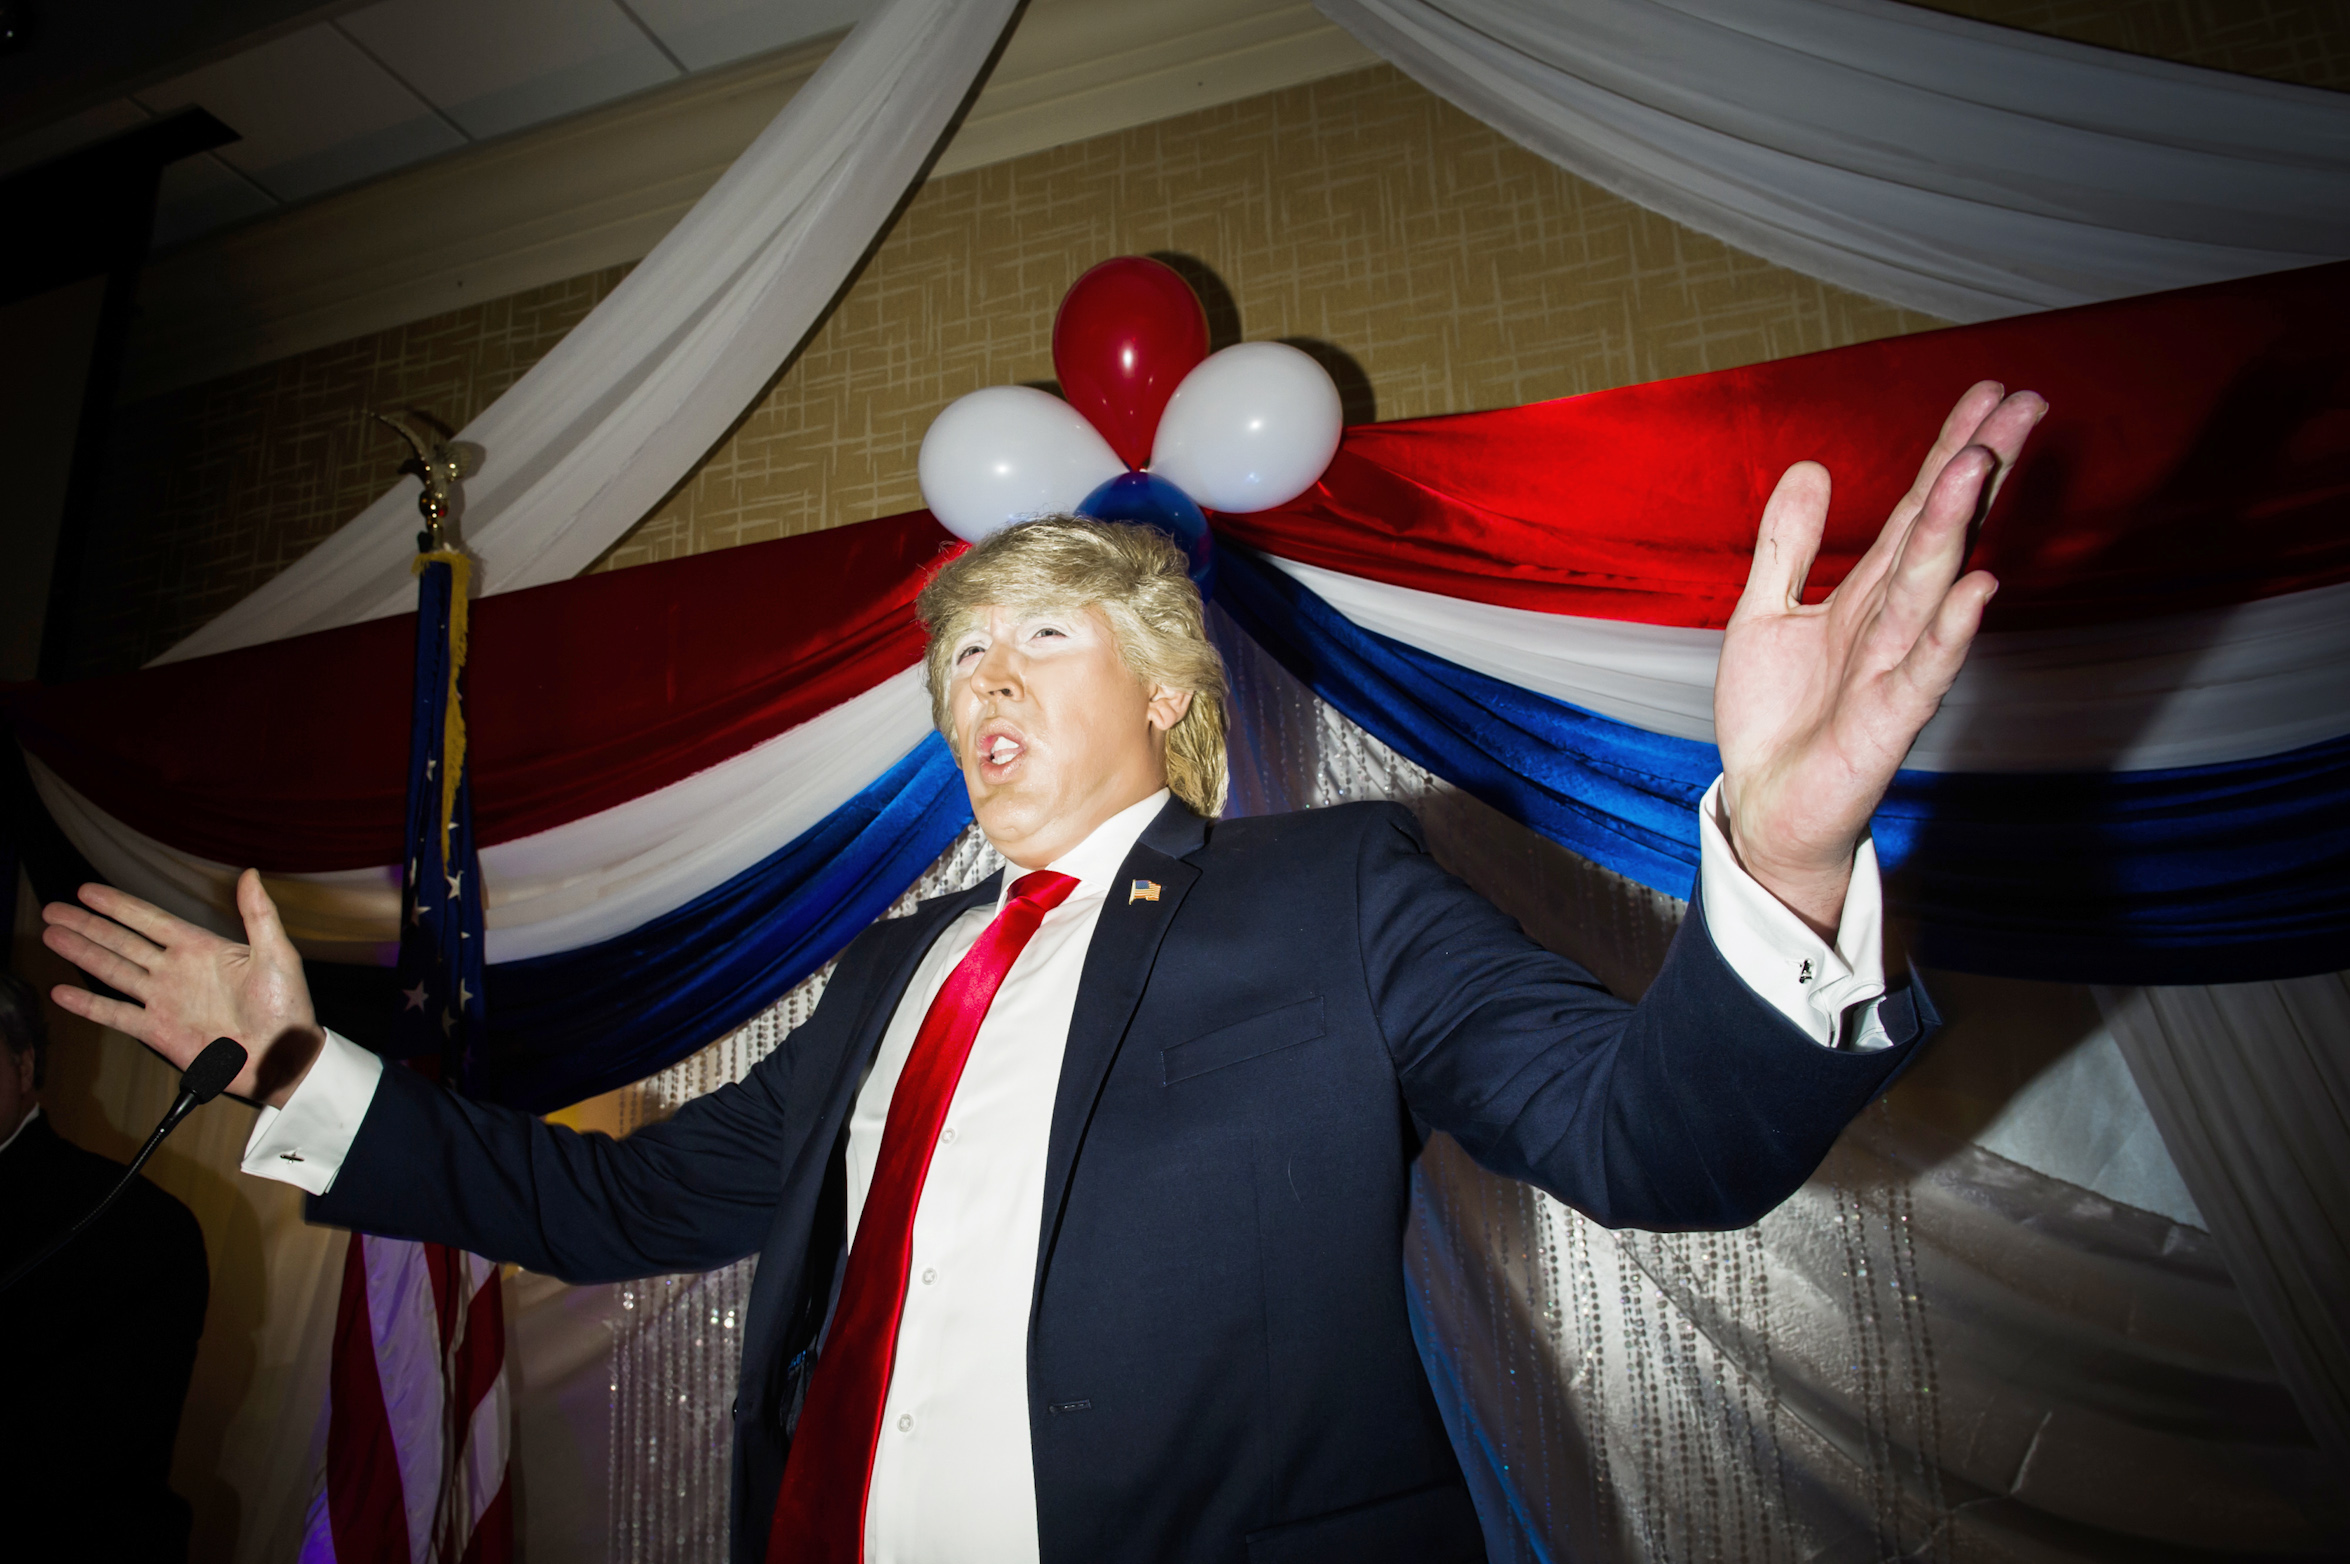 A Trump impersonator performing at the Gays for Trump  Inaugural Deploraball at the Bolger Center in Potomac, Maryland on January 20, 2017.